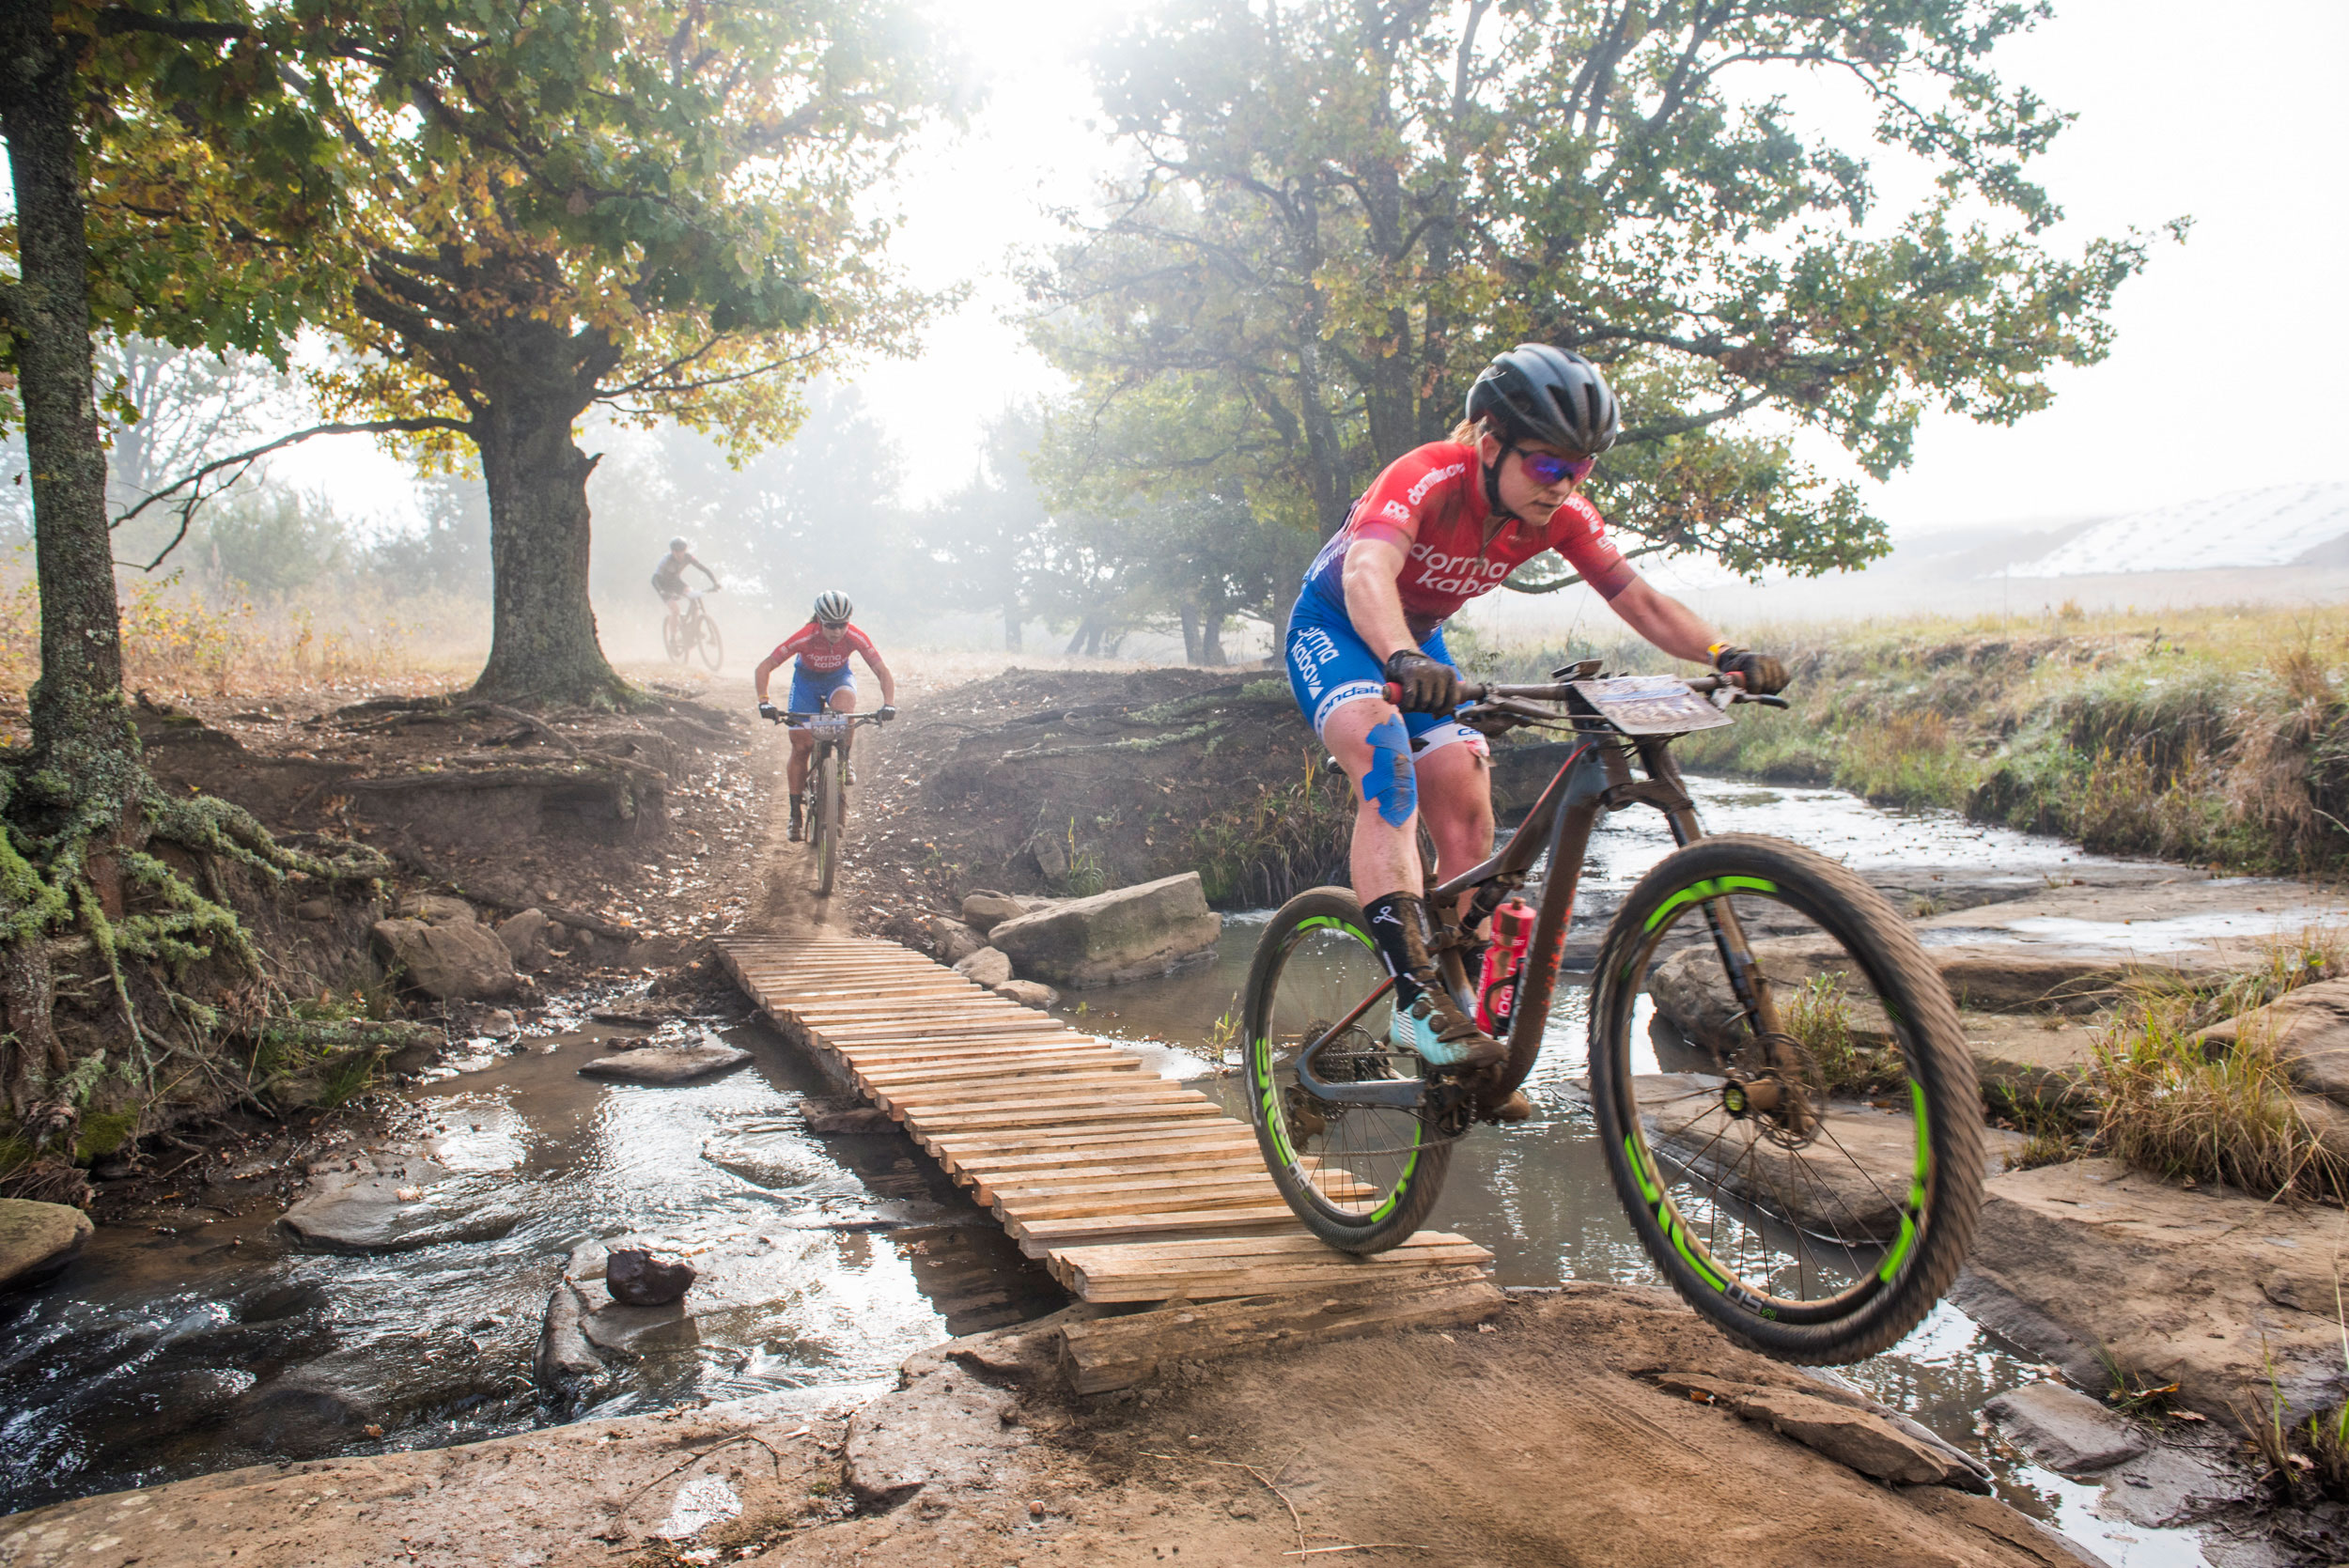 dormakaba's Amy McDougall (front) and Samantha Sanders (second) blitzed through the track to take the women's stage honours on the first stage of the Race at the KAP sani2c on Thursday.